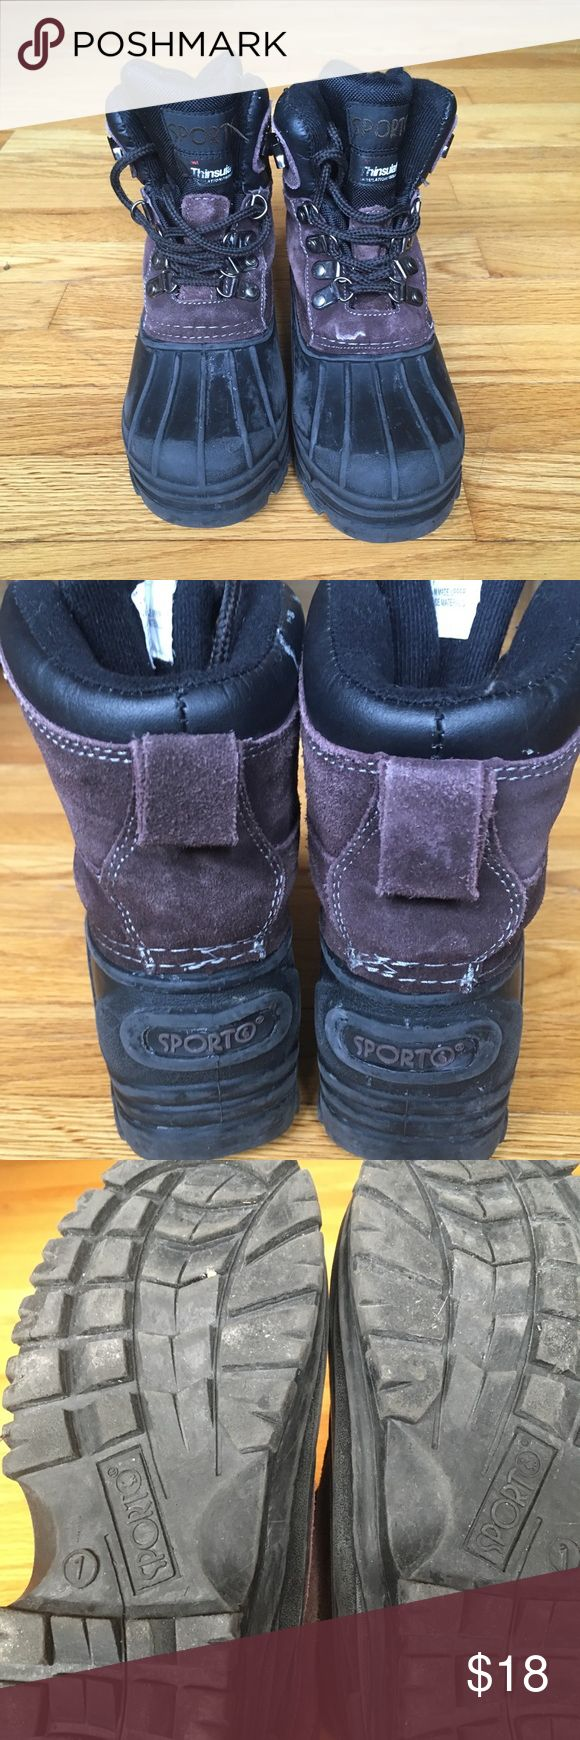 Sports Boots Youth Size 1 These Sporto boots have black rubber bottoms and brown 'suede' like tops with a velvety nap. Pre-worn with normal scuffing but still sturdy. Great for snow or rain. Sporto Shoes Rain & Snow Boots